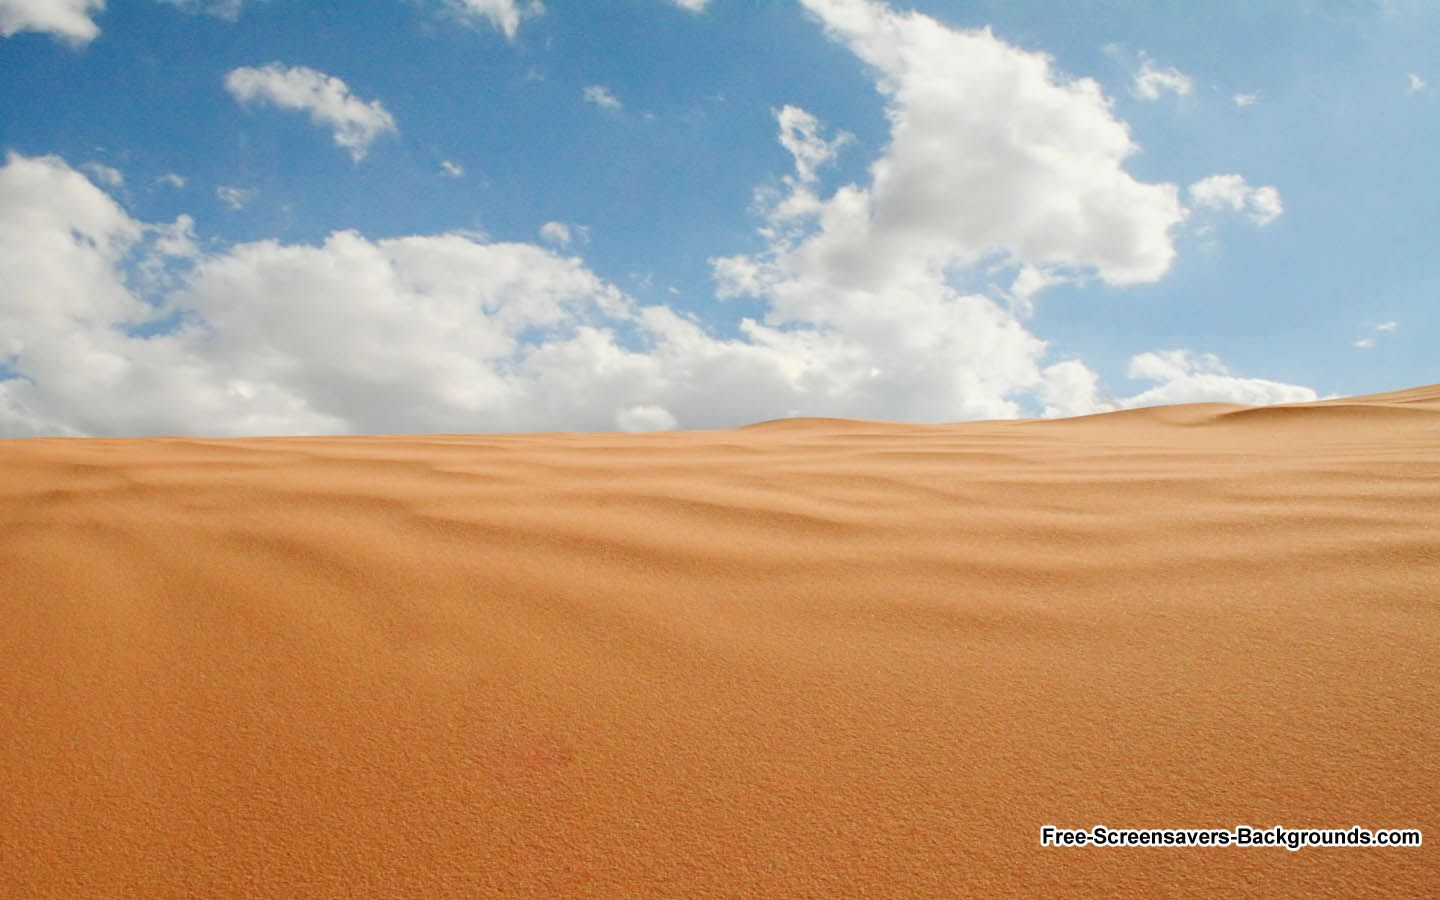 desert wallpapers high quality - photo #49